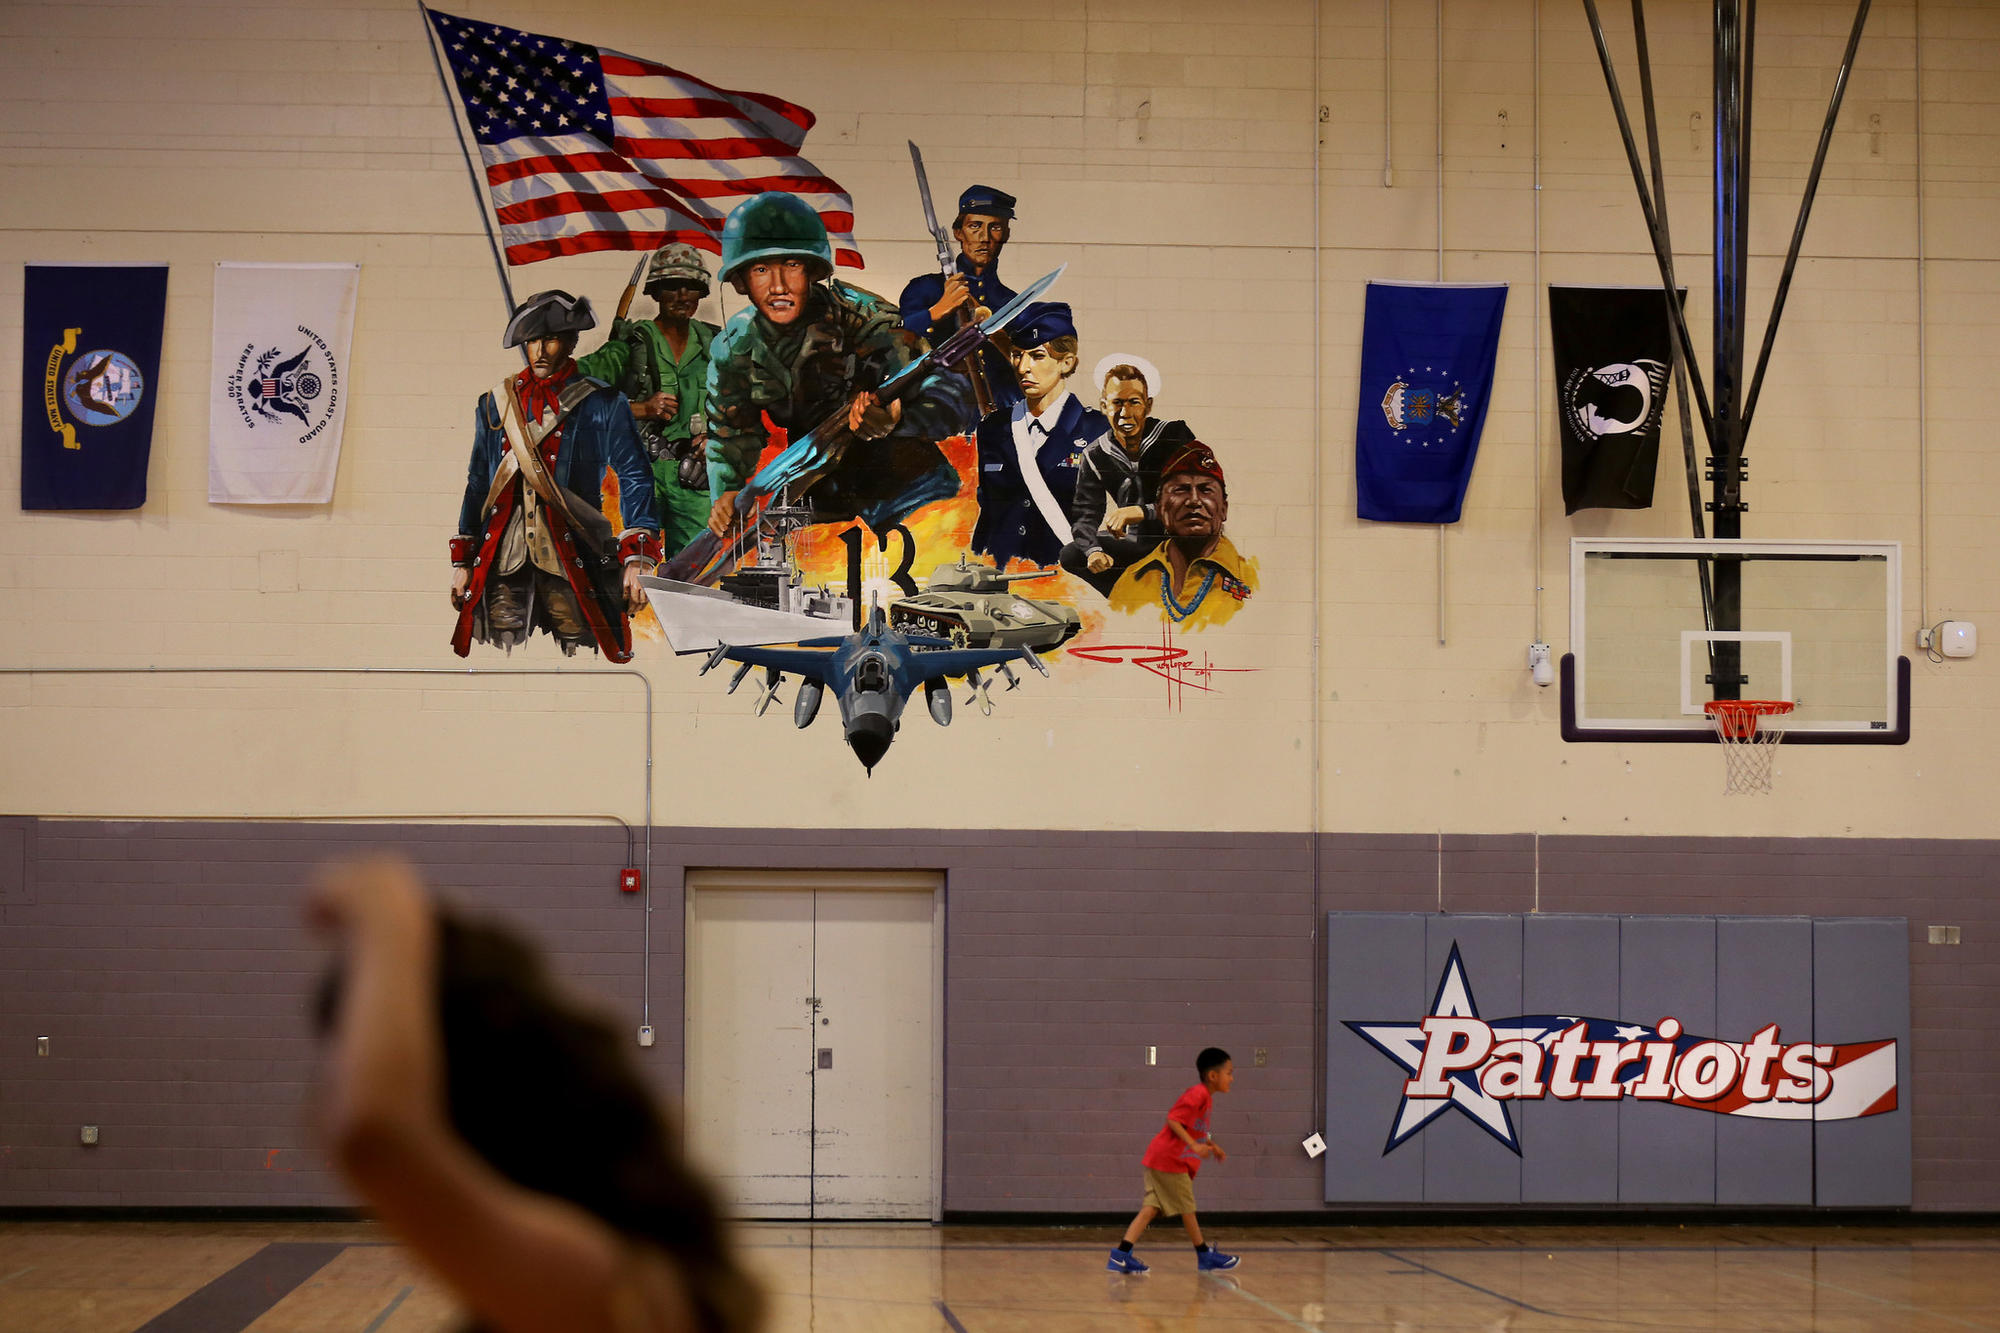 The city of Gallup honored the war hero by naming a school, Hiroshi Miyamura High School, after him. A mural in the gymnasium bears his image, center.